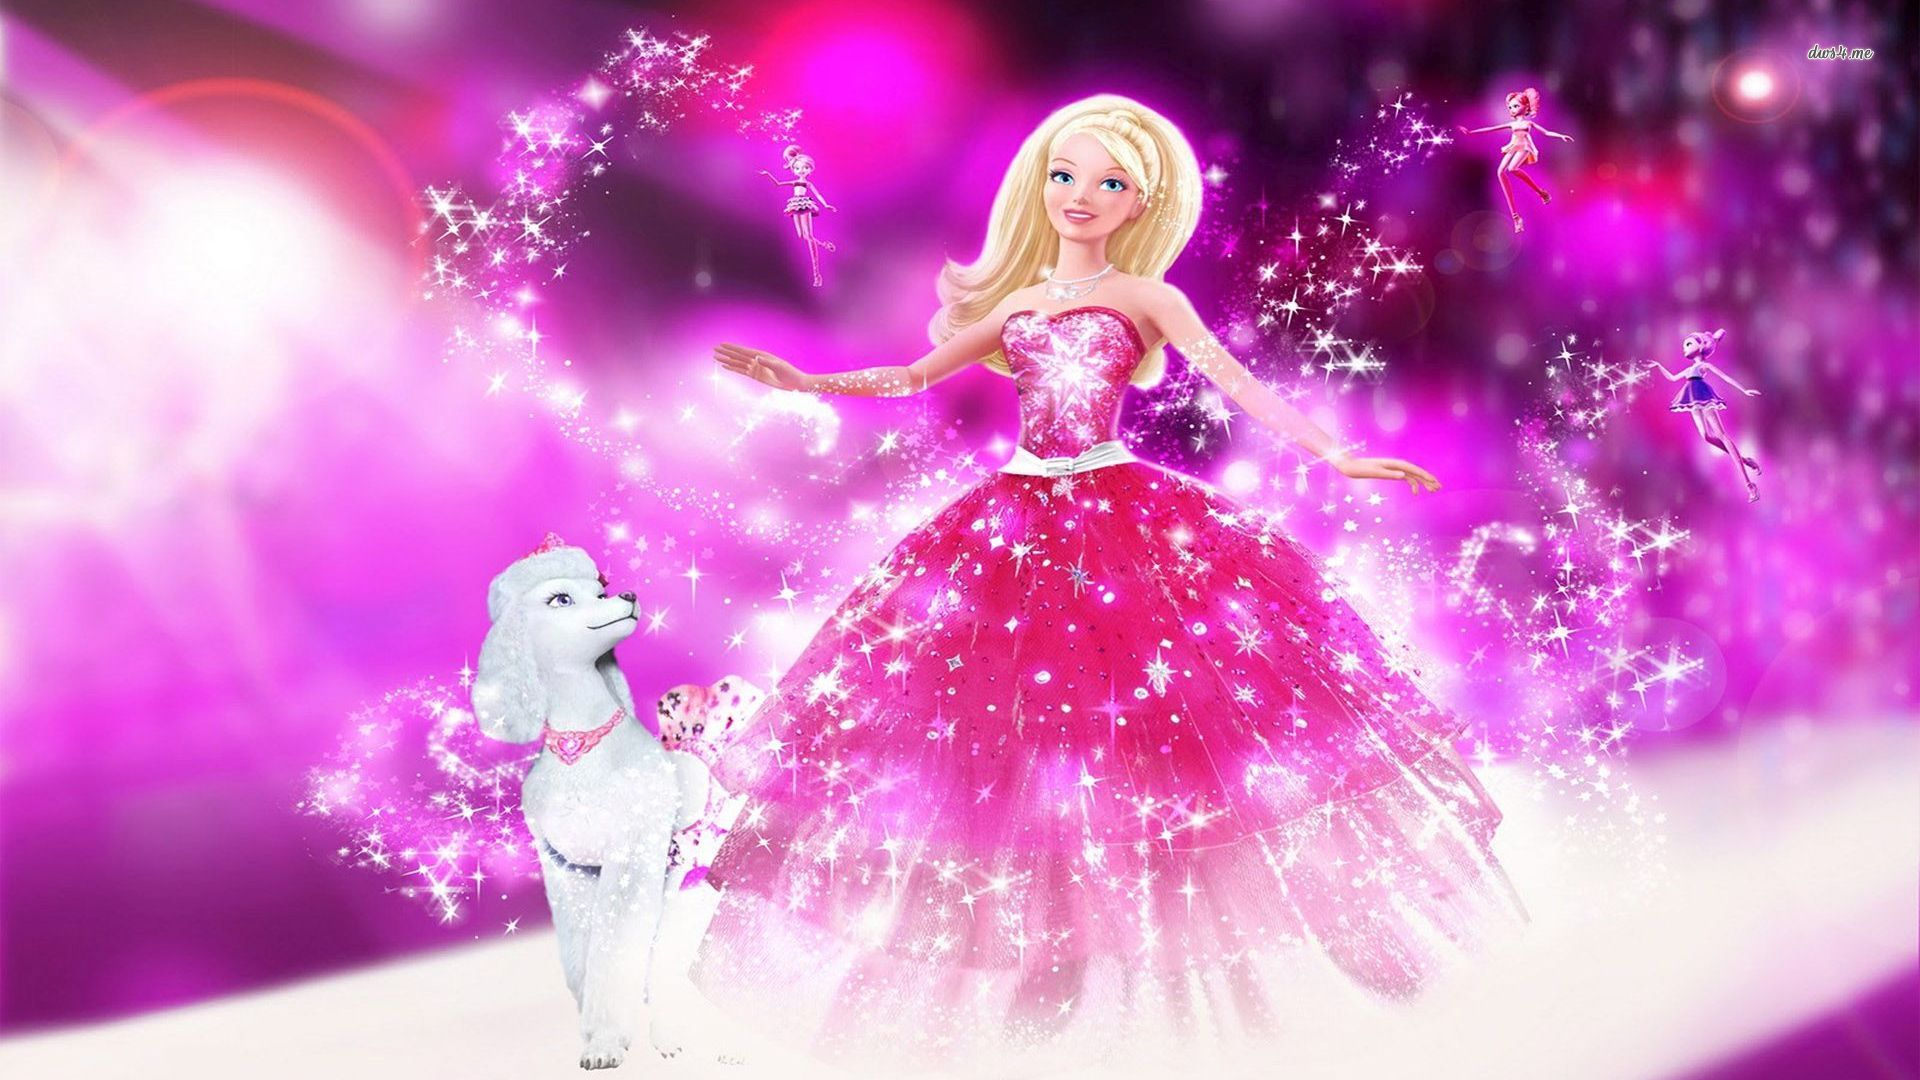 Barbie Wallpaper   MixHD wallpapers 1920x1080